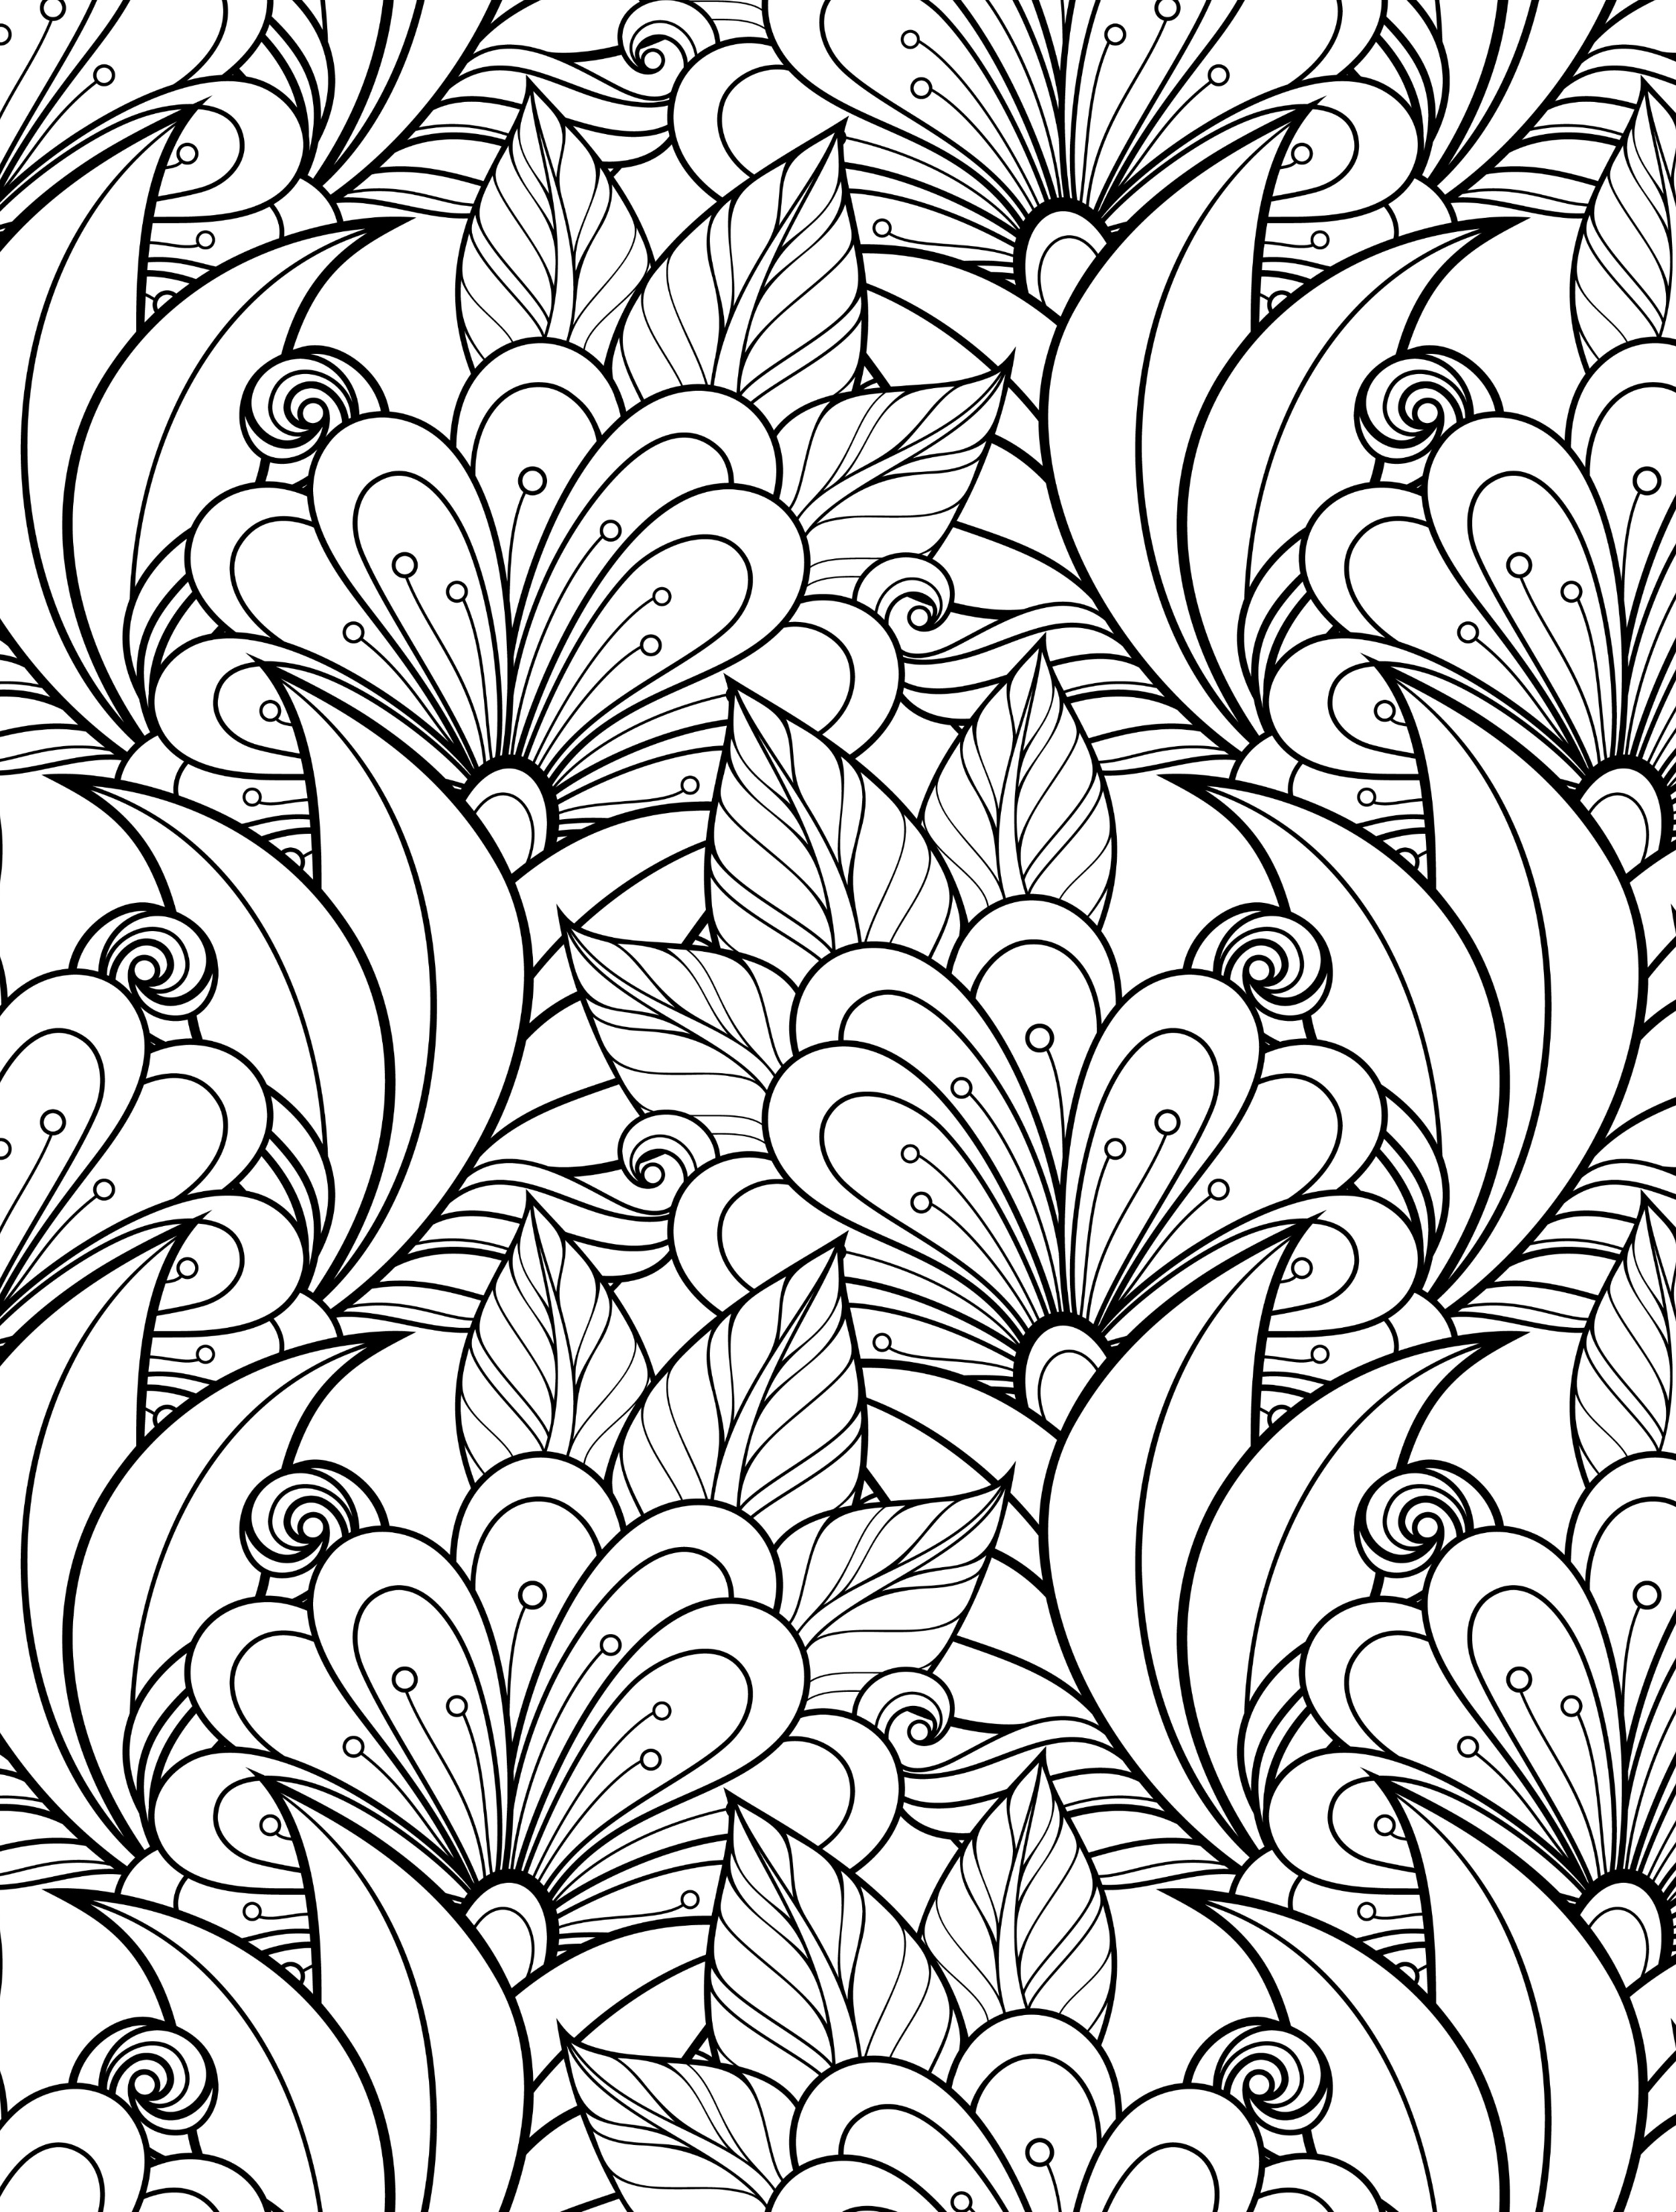 flower pattern to color coloring pages flower pattern embroidery other gt pattern flower pattern to color